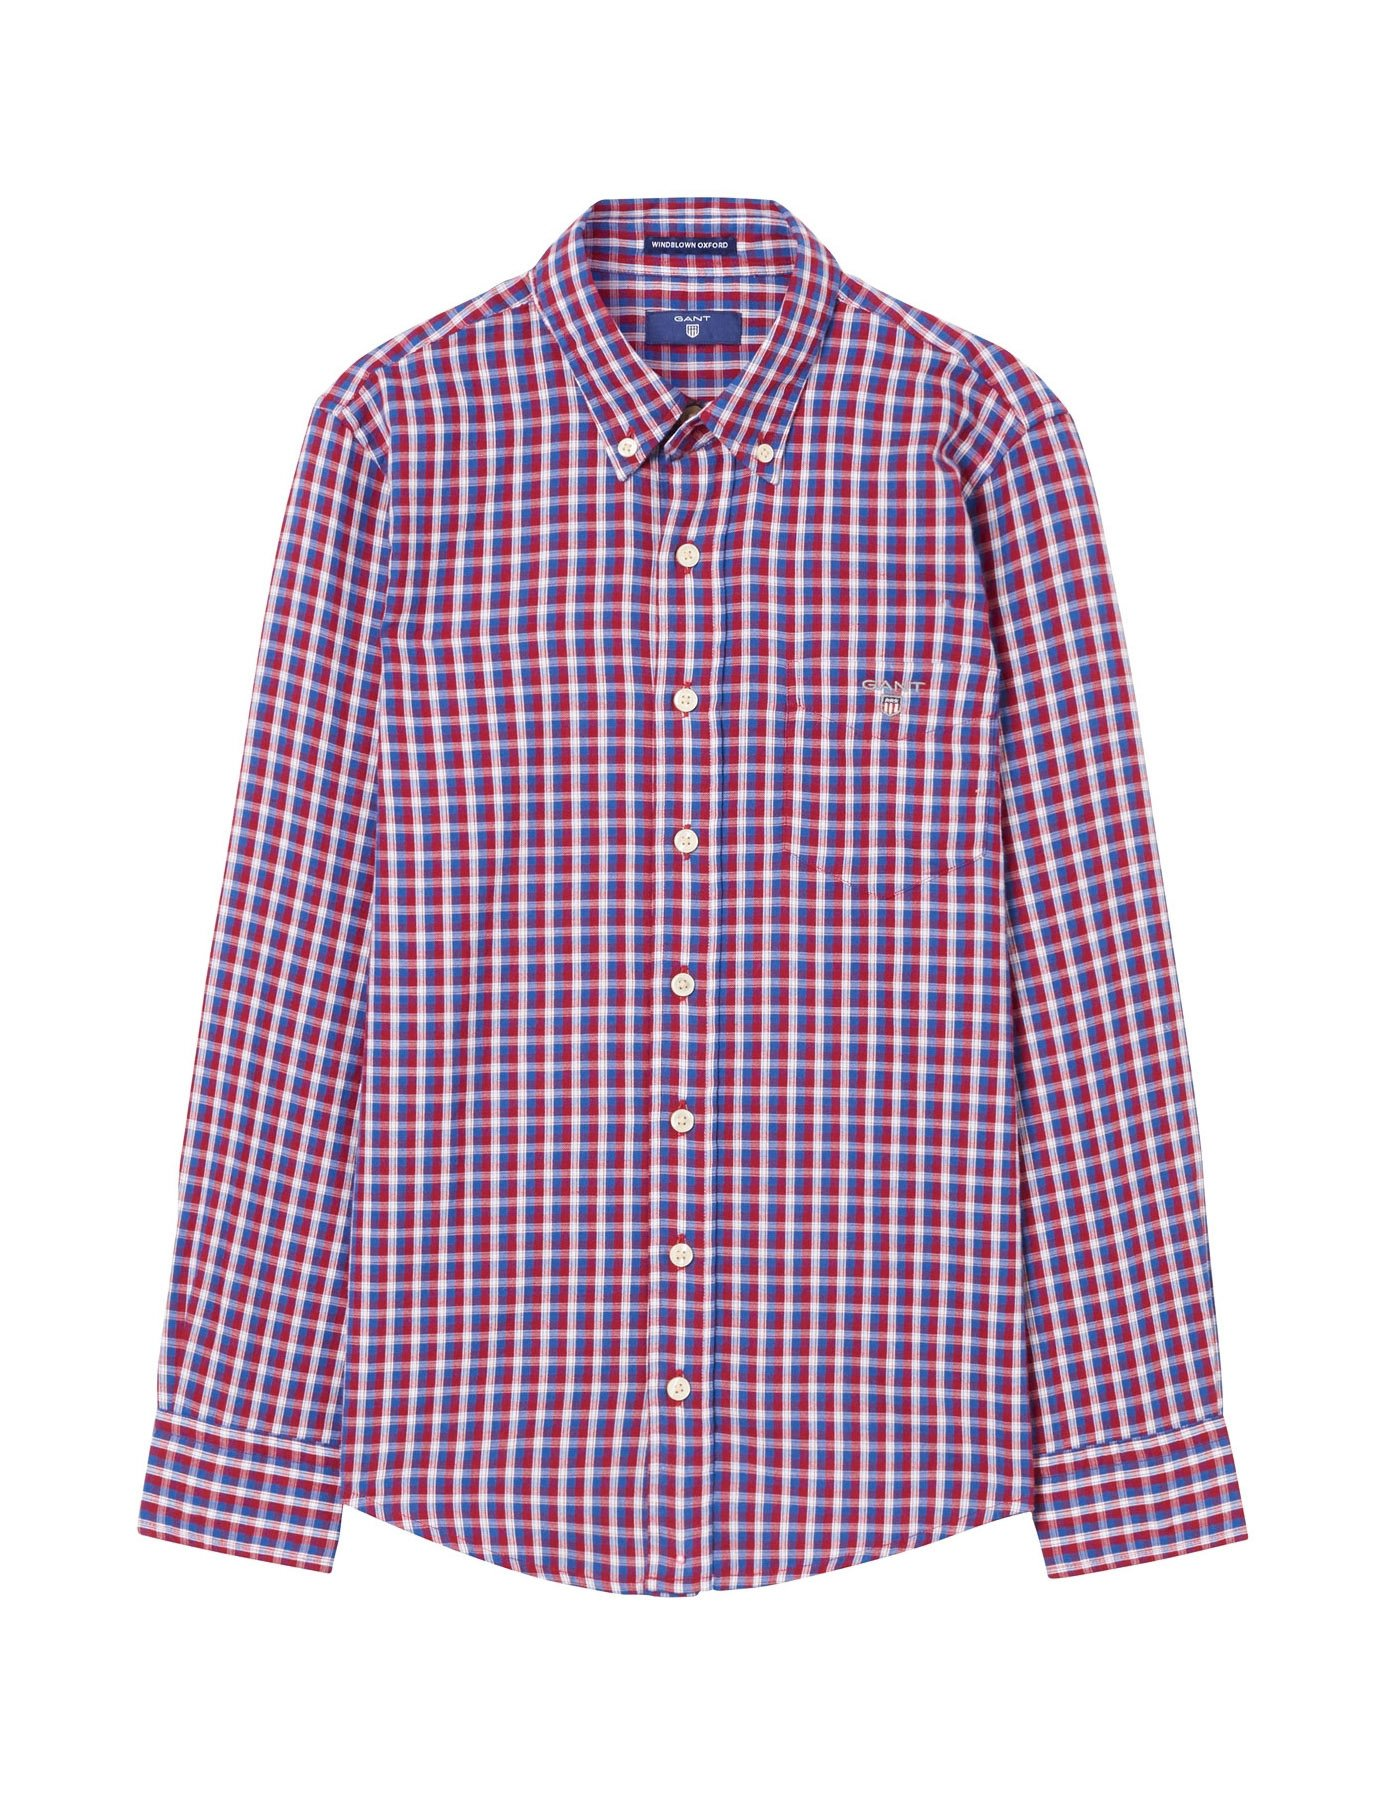 Gant Boy's Red Checked Shirt in Size 9-10 Years (134-140 cm) Red